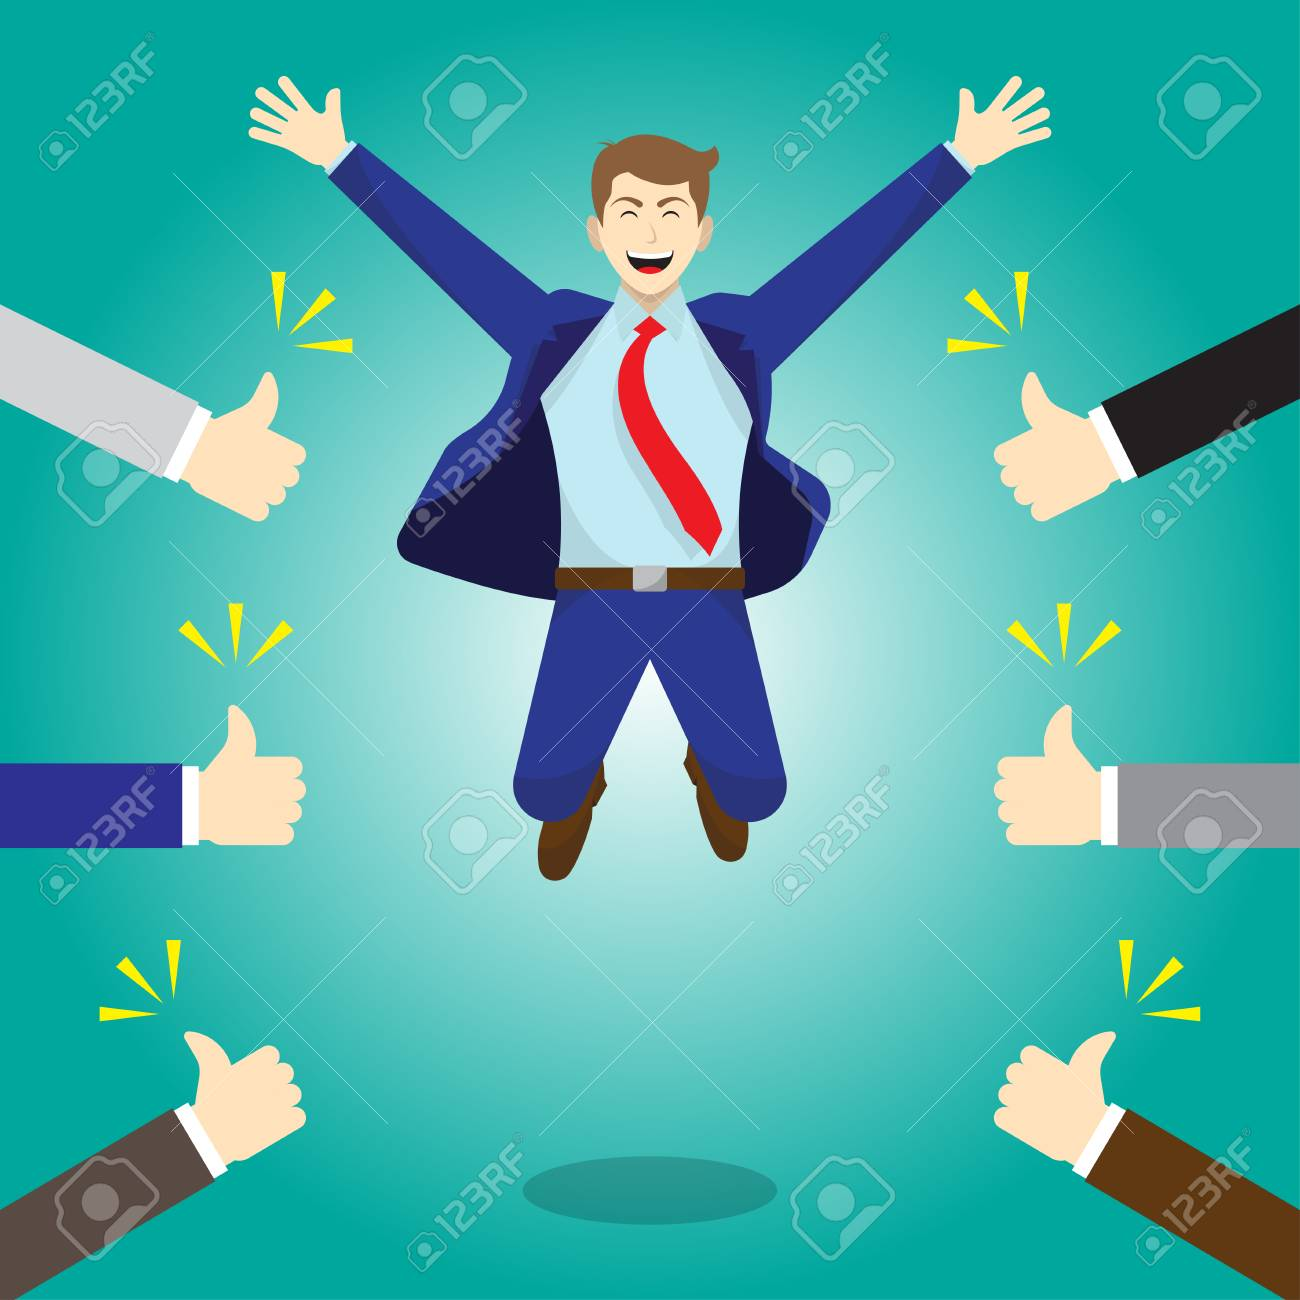 Vector Illustration Business Concept As A Happy Businessman Is Highly Jumping And Thumbs Up From Others. He Is Delightful And He Is Admired, Praised, Respected, Cheered And Full Of Social Esteem. - 91592203